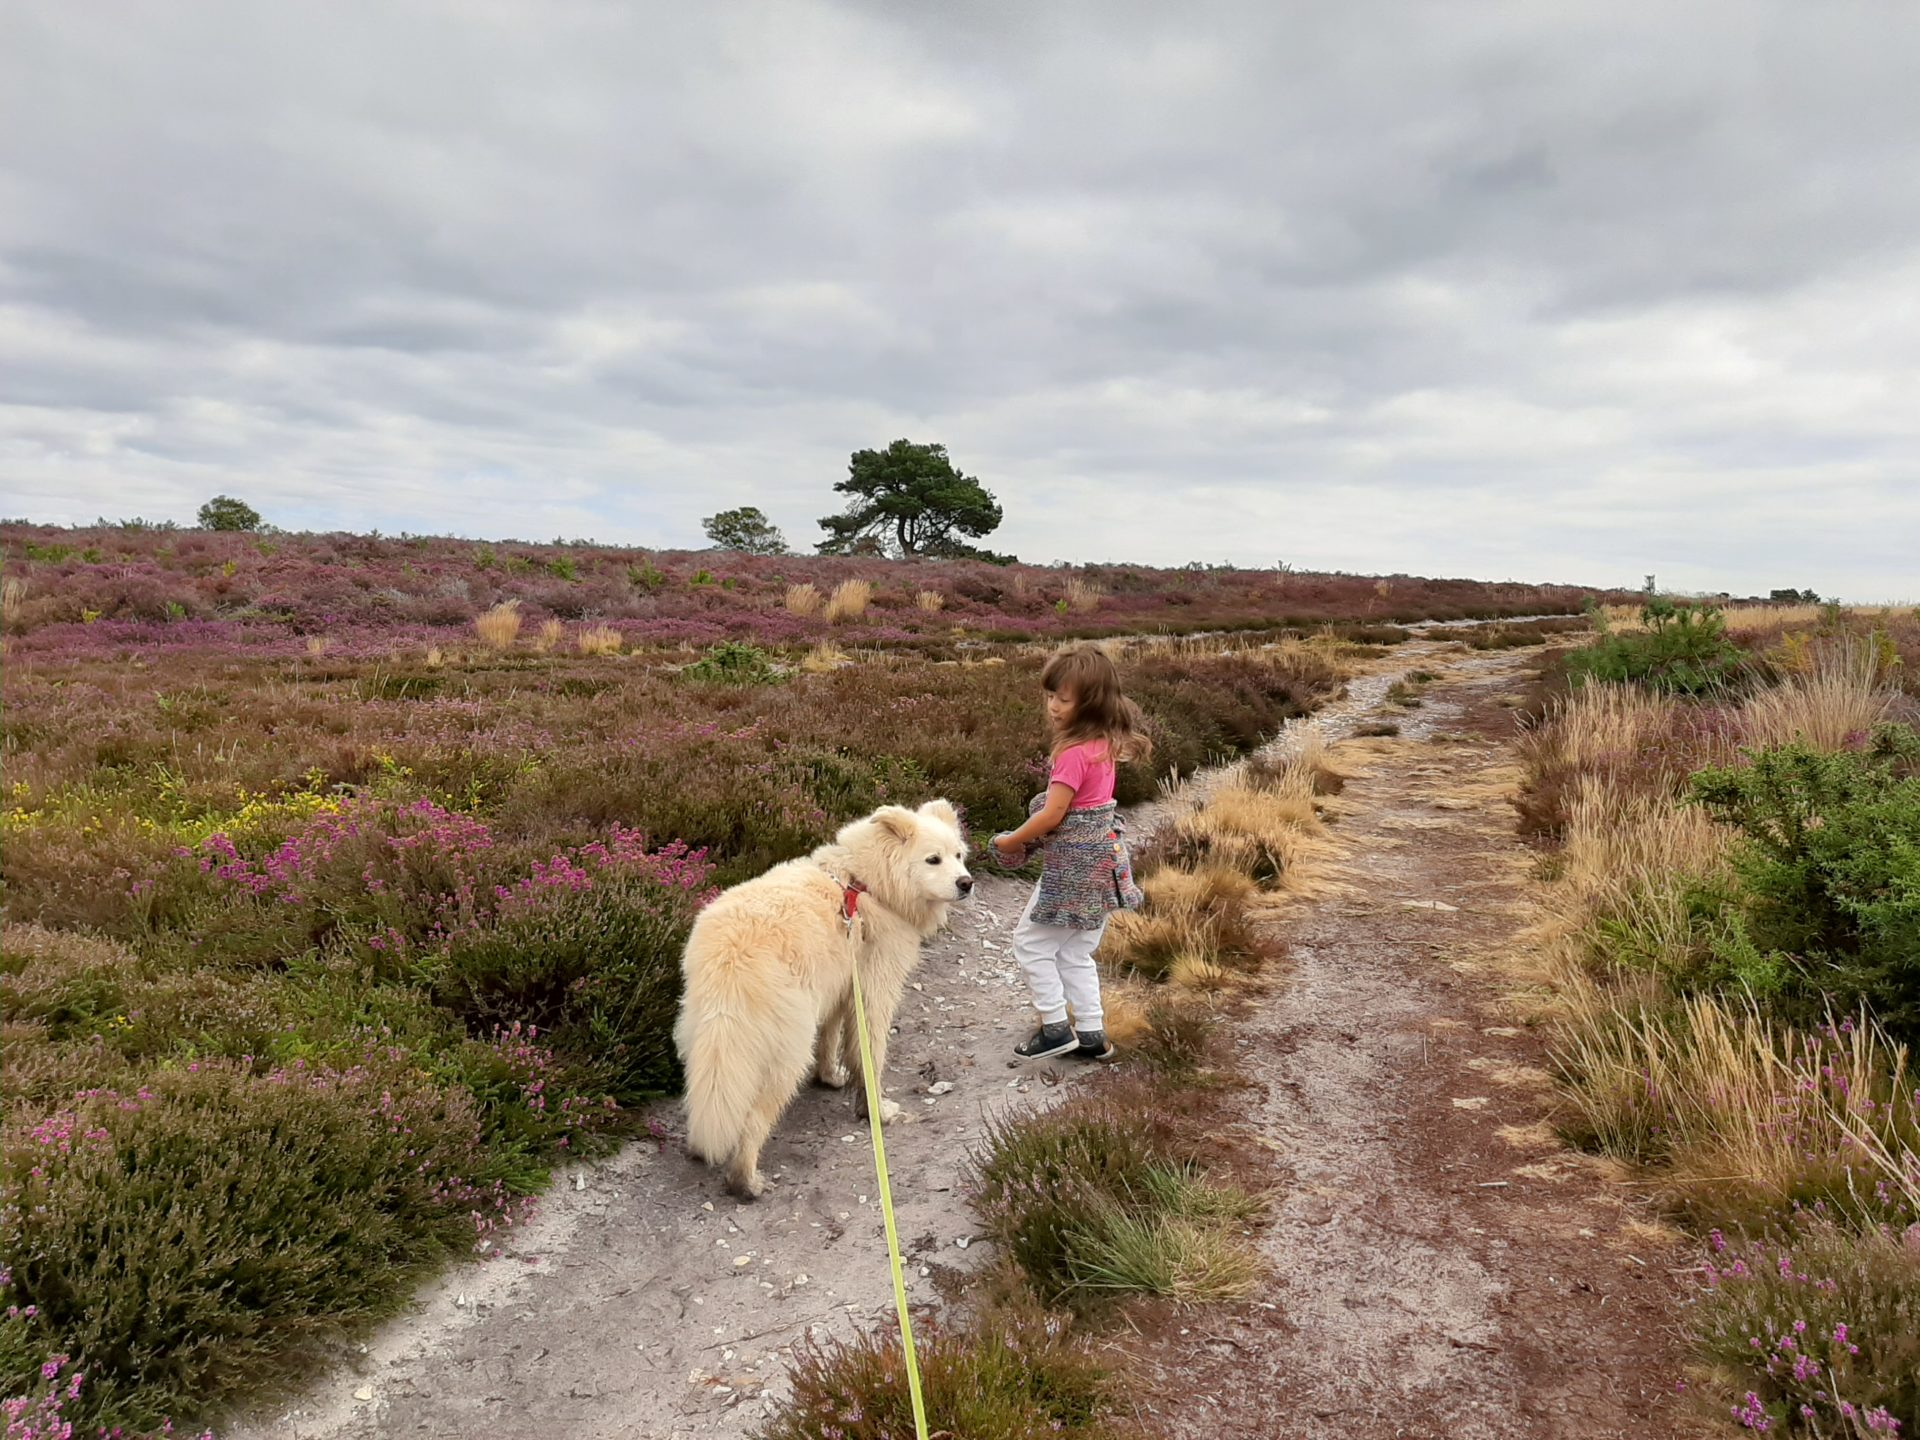 Small child and dog on path in heathland under moody skies